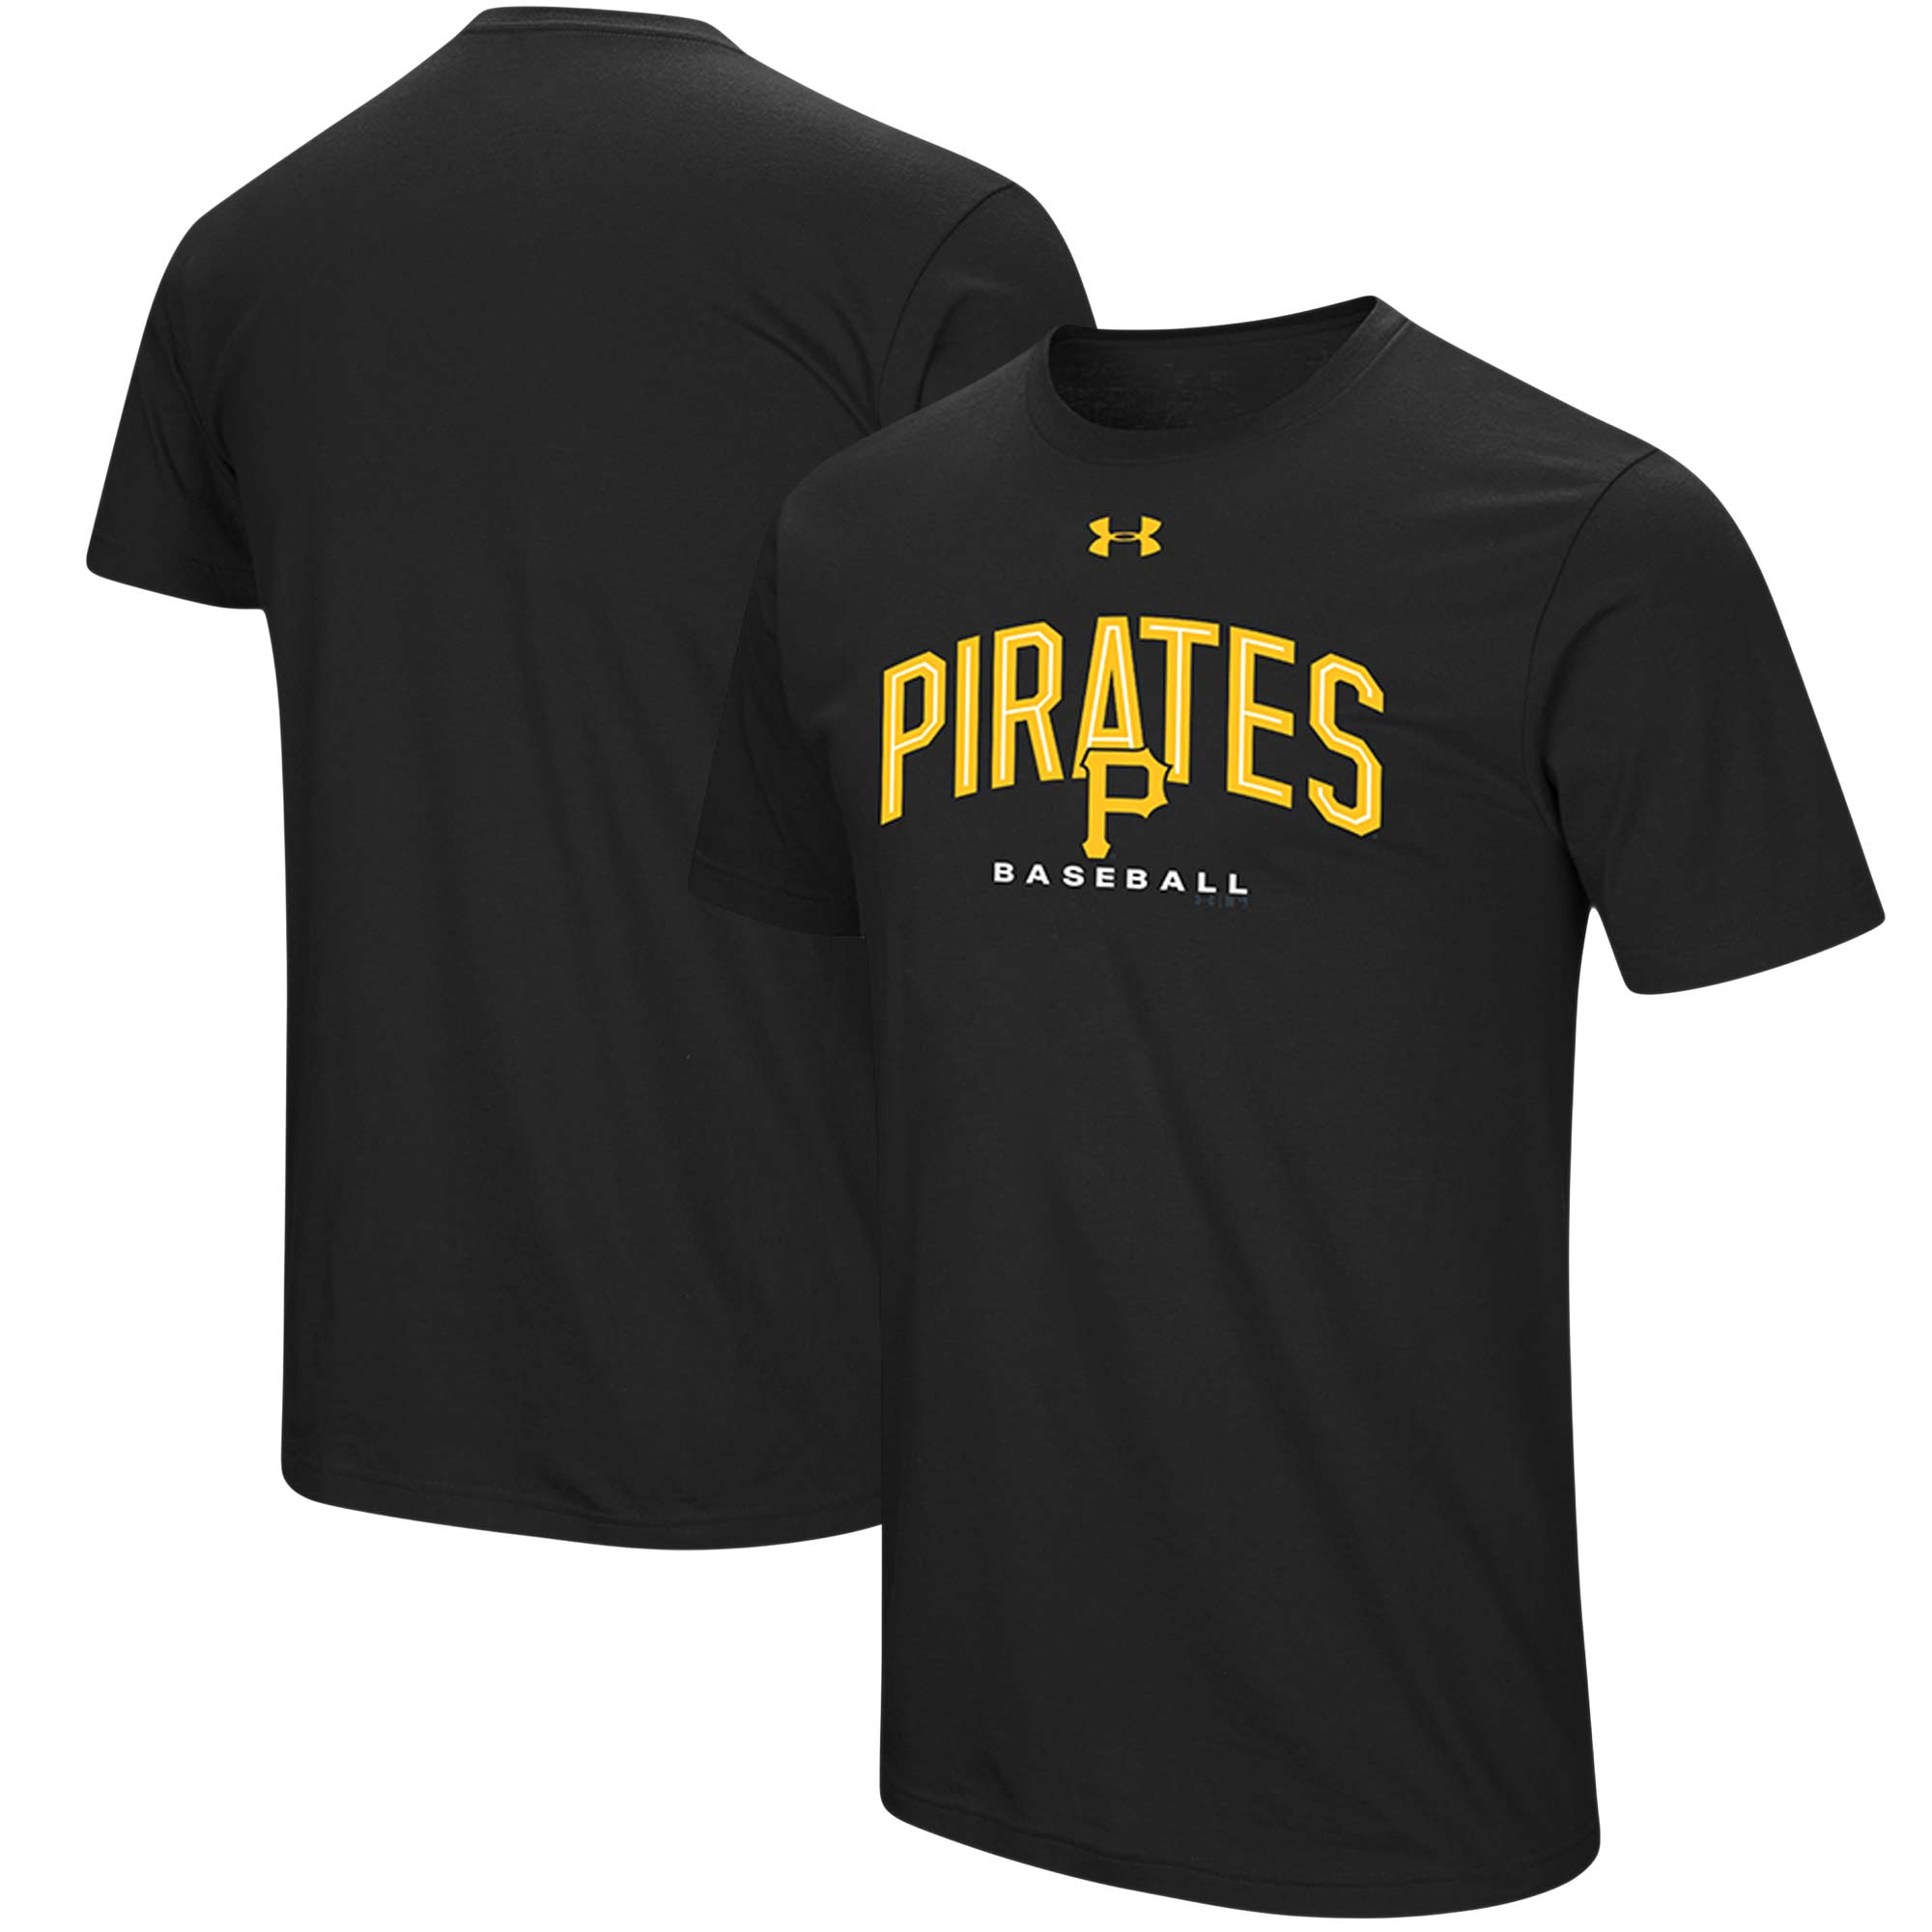 Pittsburgh Pirates Under Armour Performance Arch T-Shirt - Black